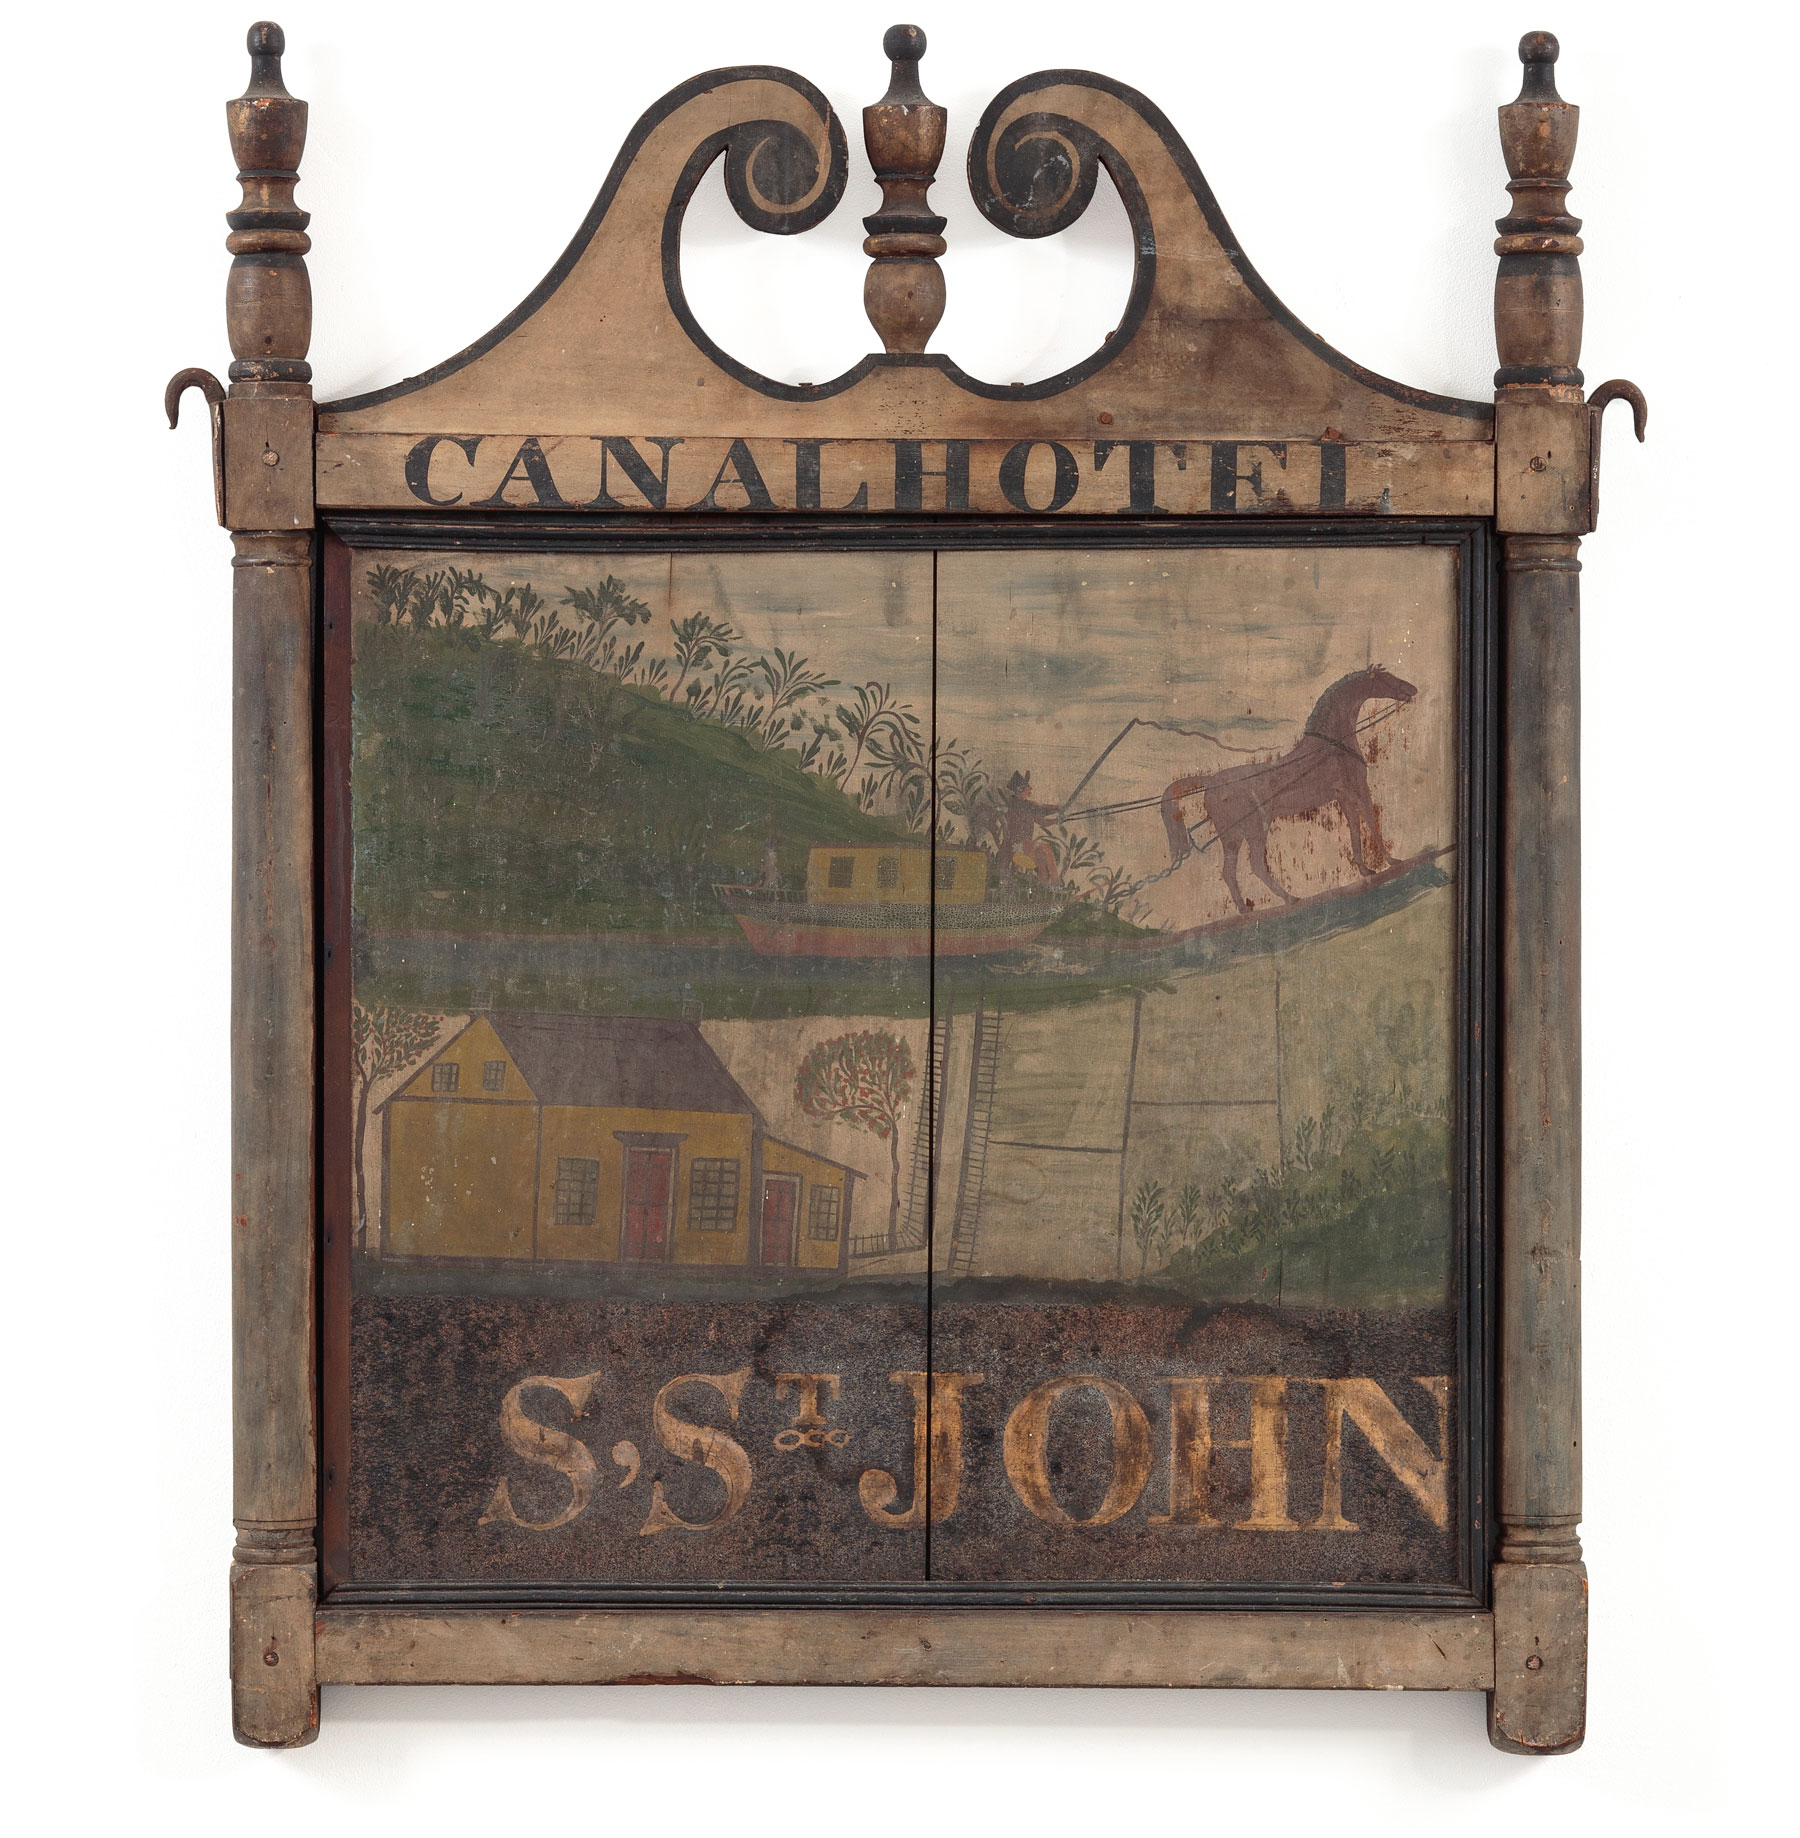 Sign for the Canal Hotel, (reverse identical). Port Jervis, New York, c. 1826, Paint on wooden board and frame, smalt, gold leaf, iron hardware, 41 x 32 in. Private collection. Image courtesy of David A. Schorsch and Eileen M. Smiles, Woodbury, CT. Both sides of the sign are decorated with the same images and lettering but show different amounts of wear.